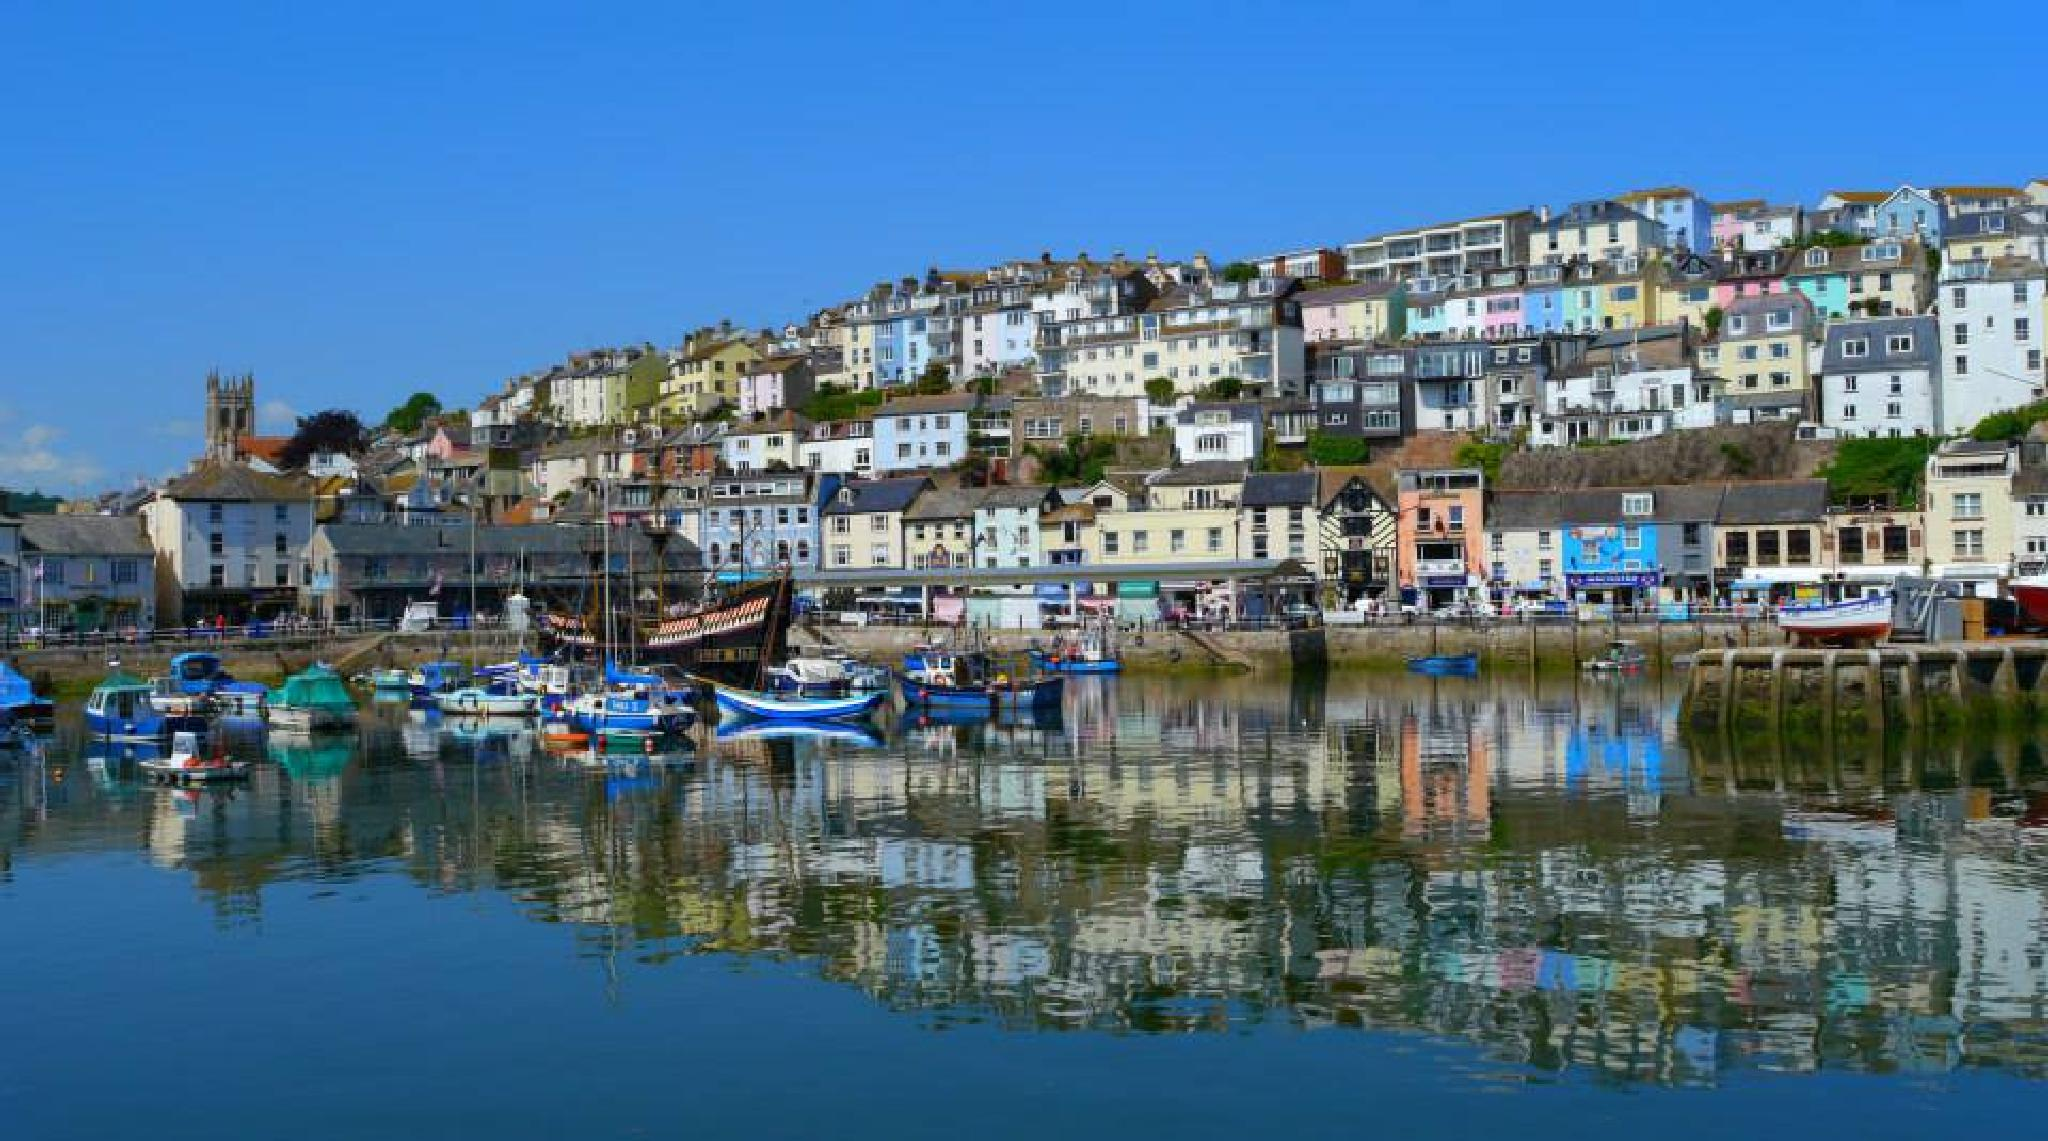 Reflecting on Brixham Harbour by Dave & Tatiana Williams